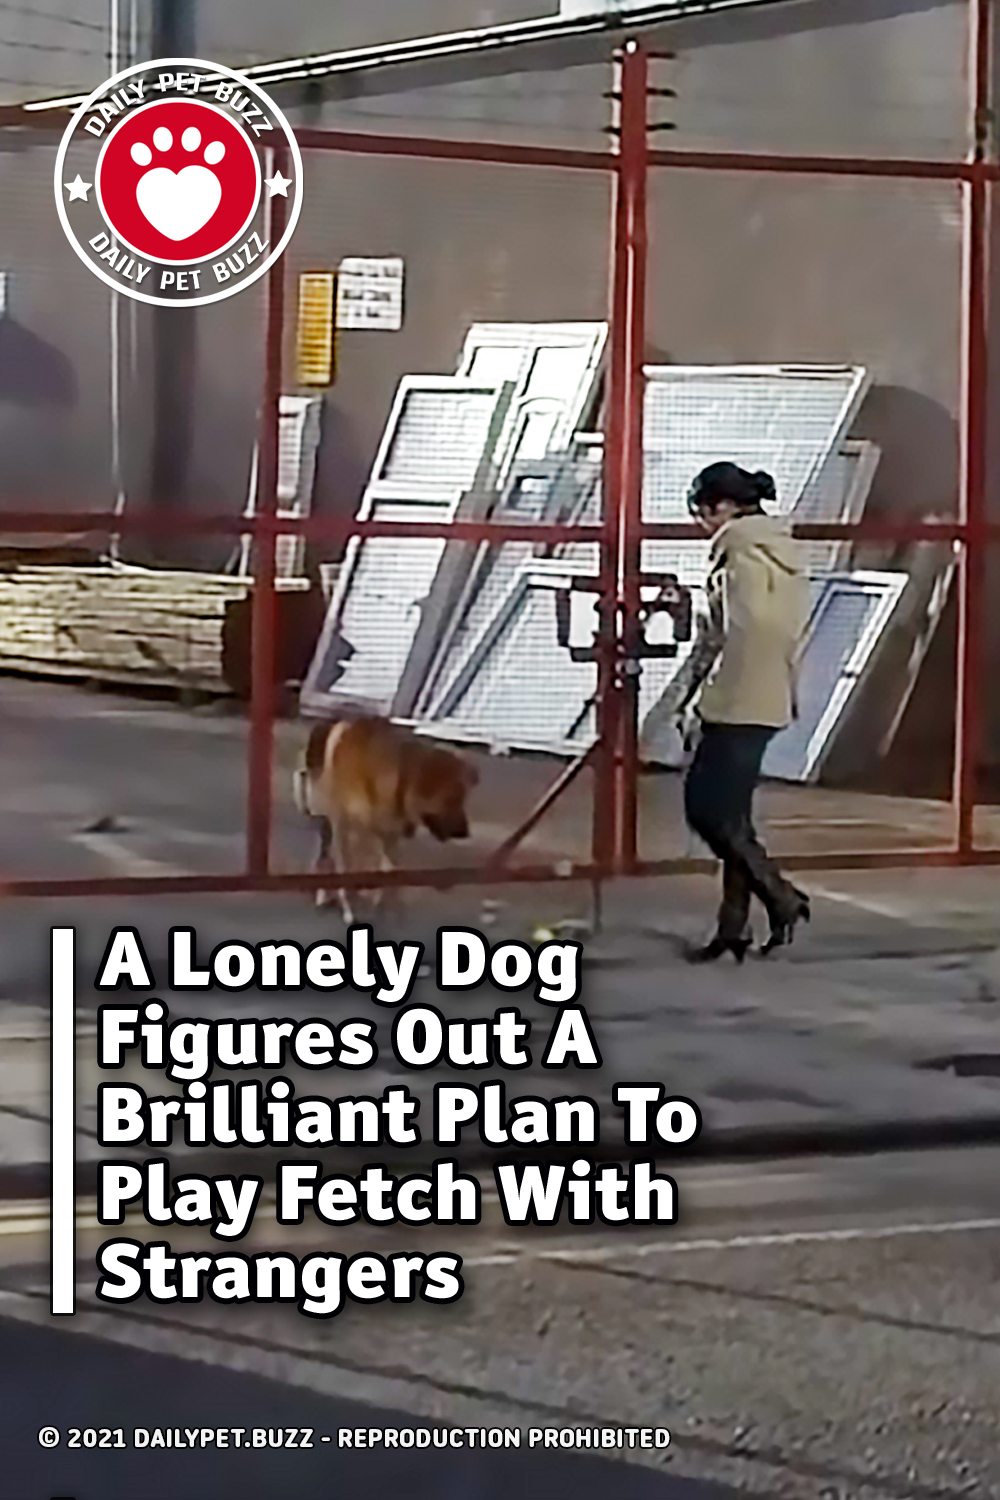 A Lonely Dog Figures Out A Brilliant Plan To Play Fetch With Strangers